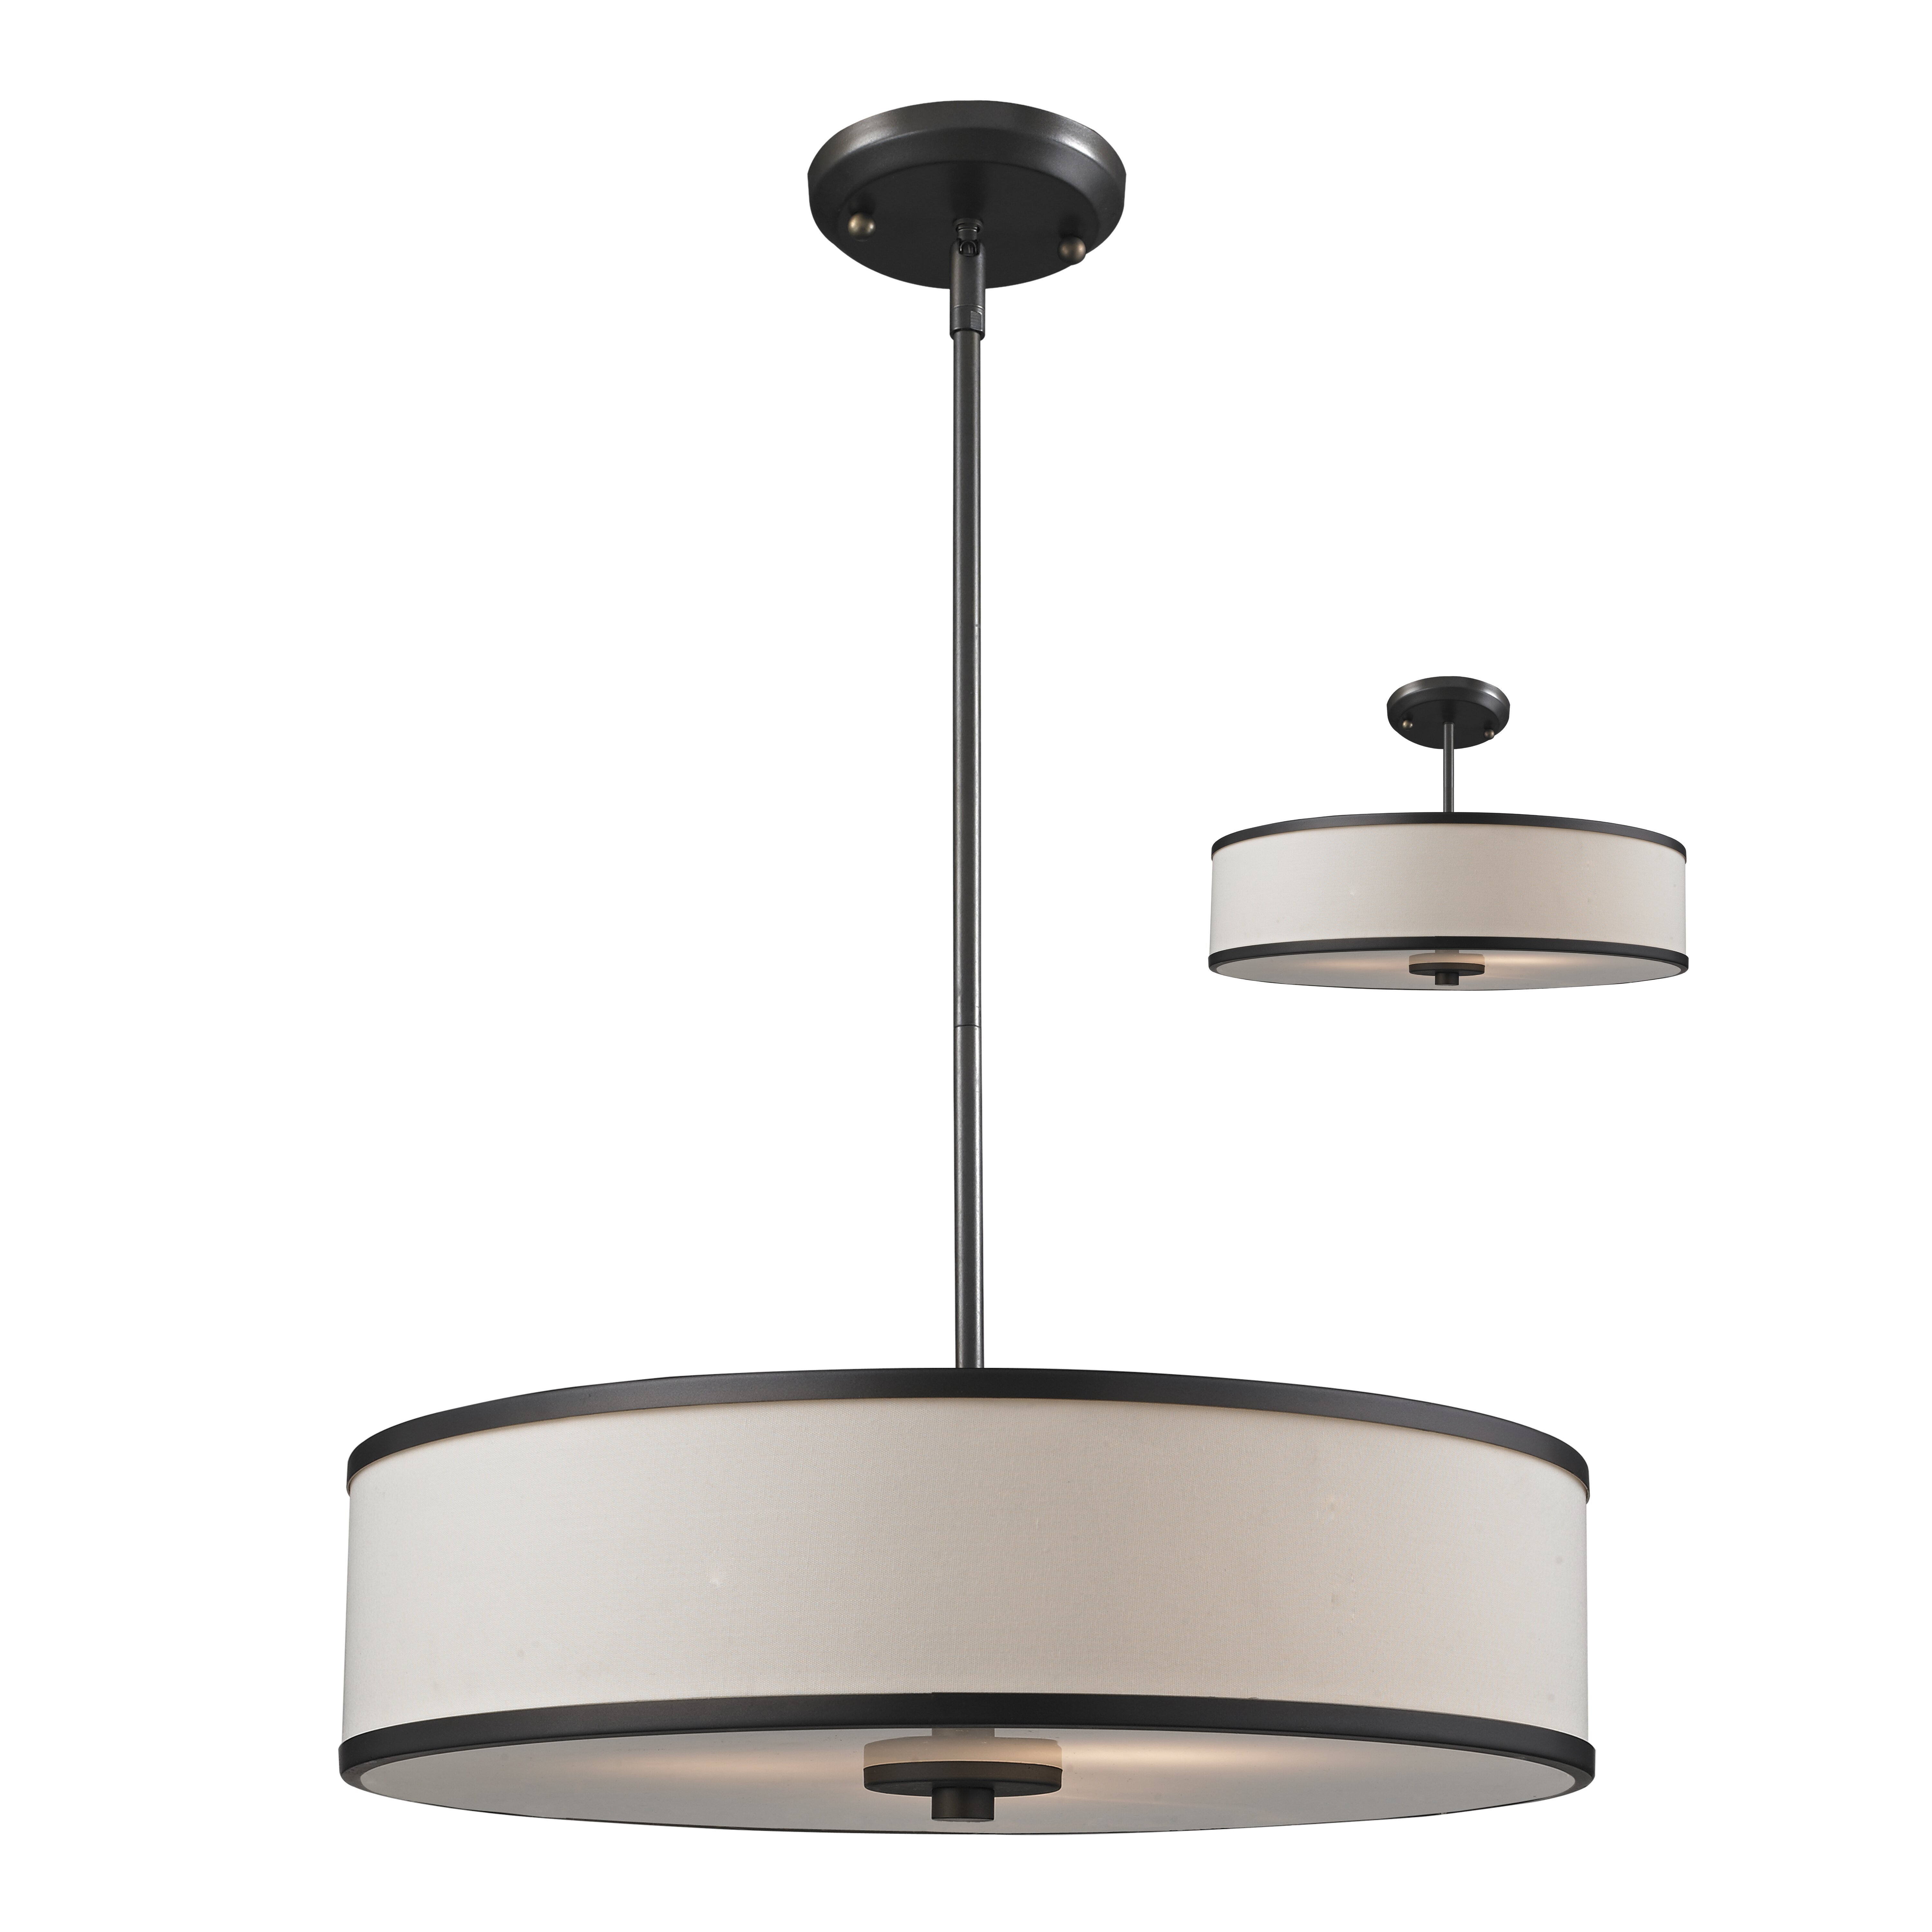 Foyer Drum Lighting : Z lite cameo convertible light drum foyer pendant